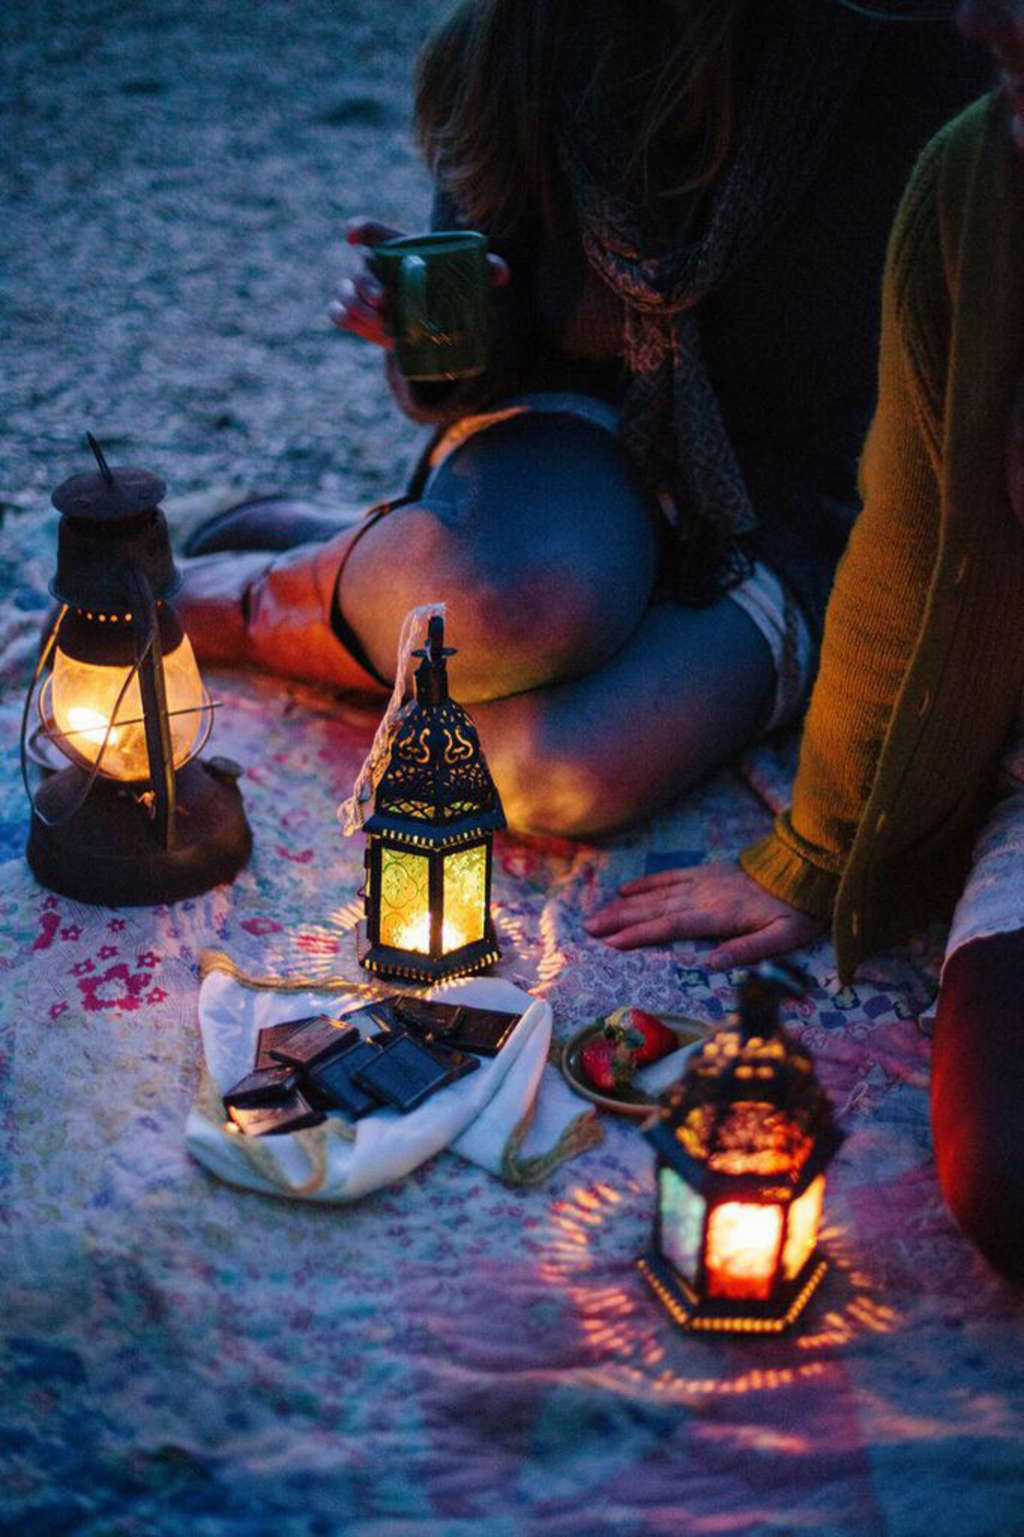 4 Picnic Ideas: From Day Drunk to After Dark